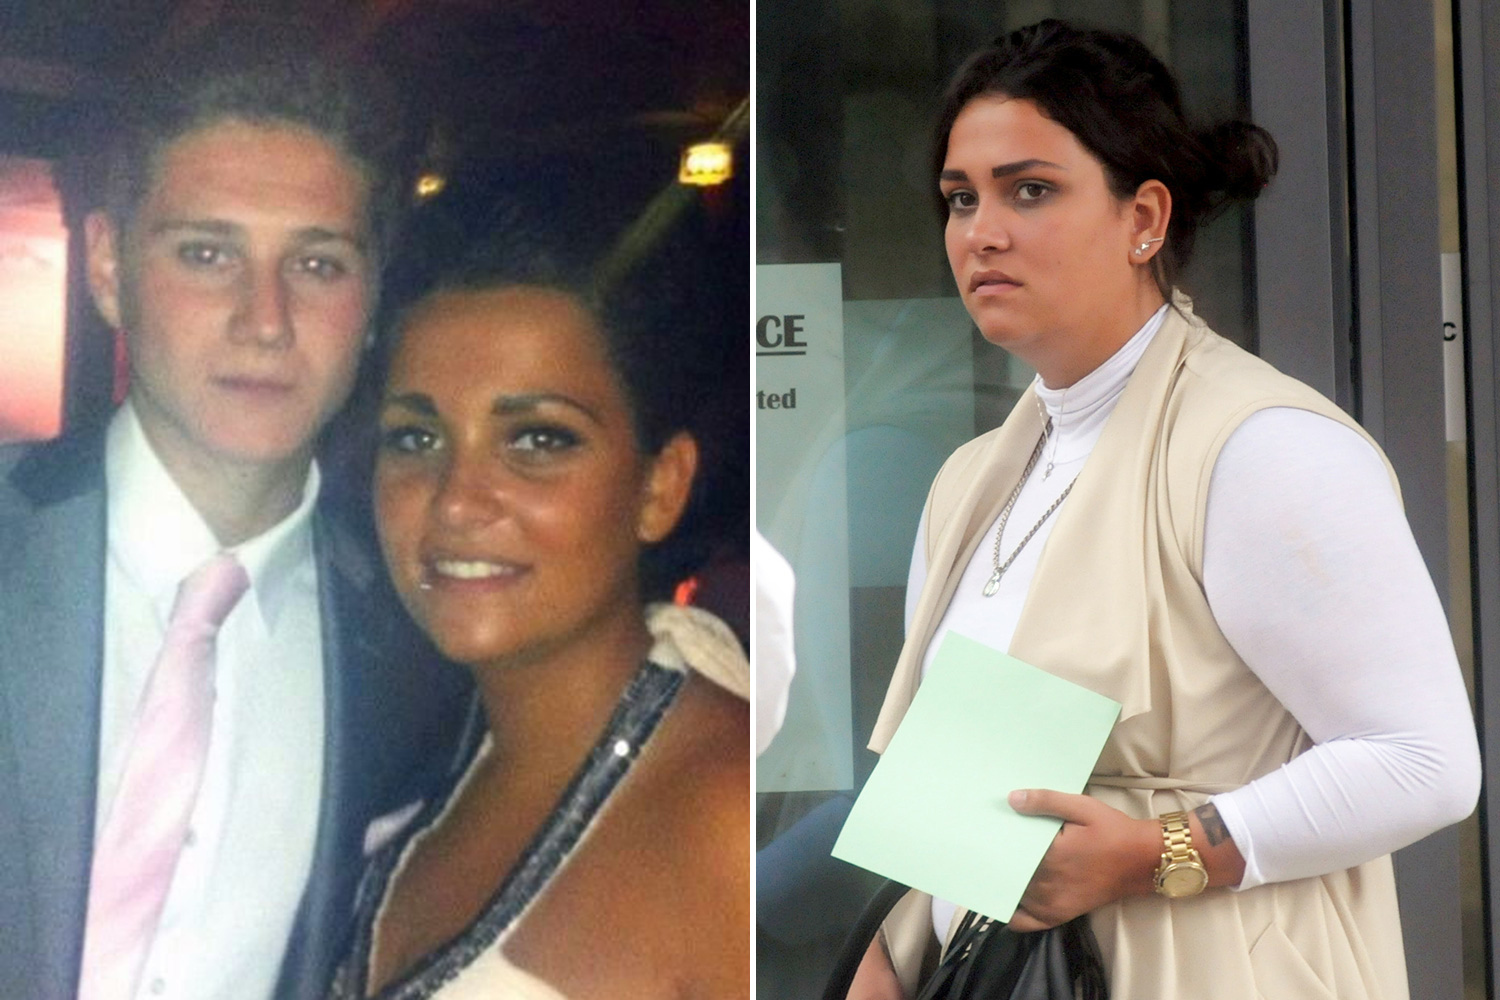 YOUNG MUM KILLED FIANCE AND FATHER OF HER CHILD IN HORROR CRASH